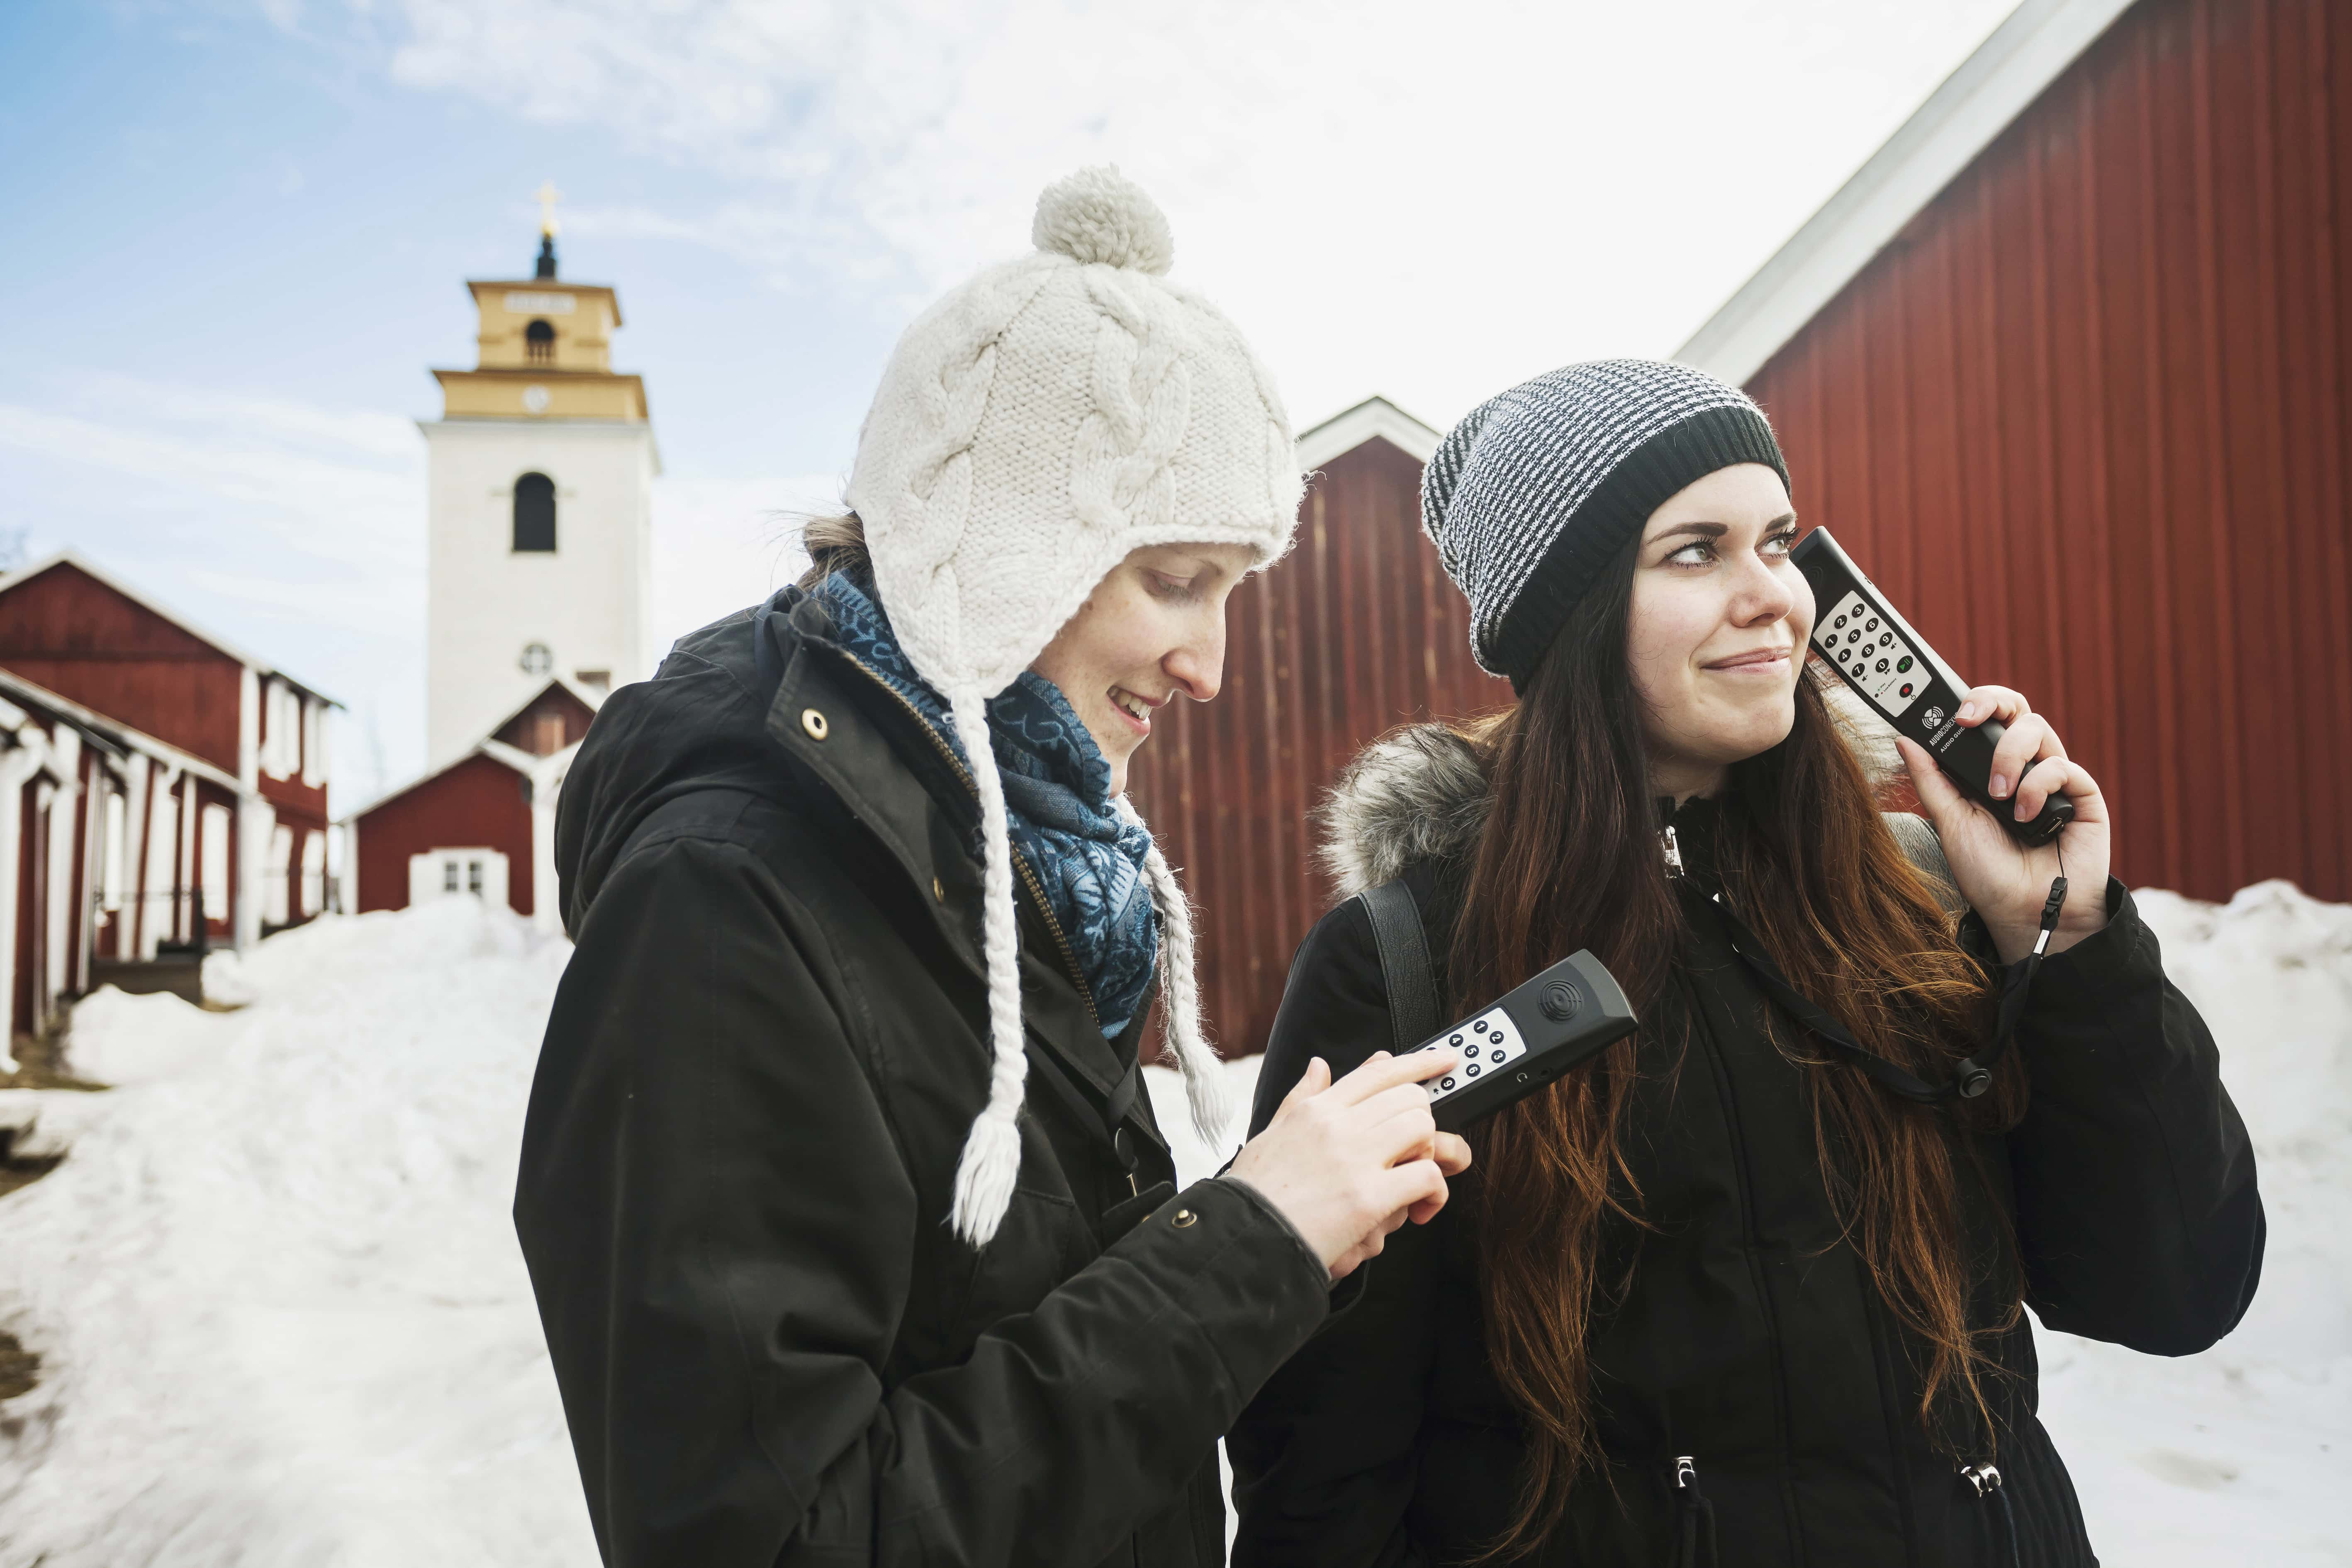 Two visitors listening to an audioguide in Gammelstad Church Town